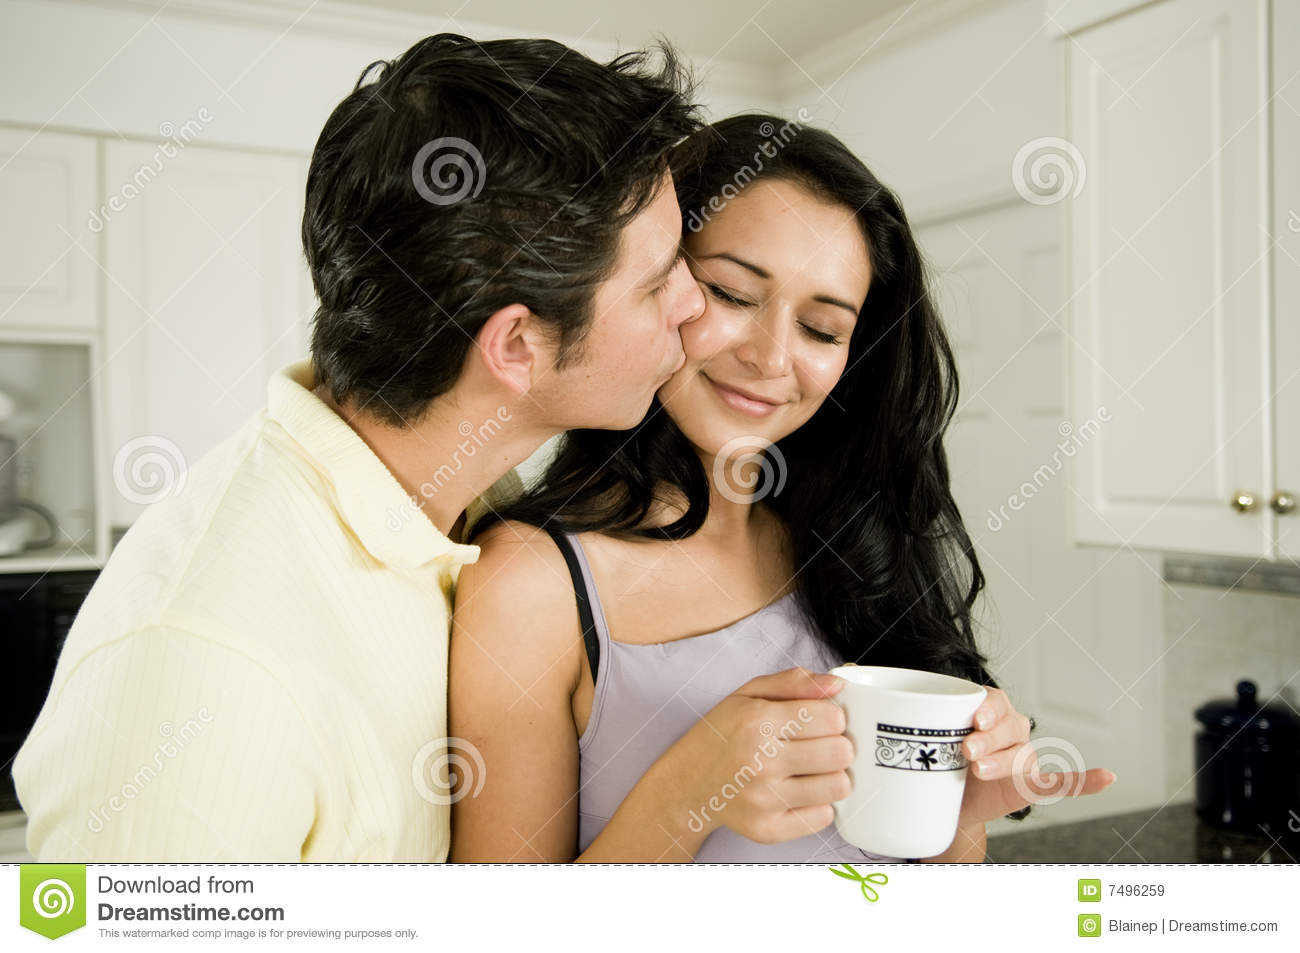 Good Morning And A Kiss Stock Image Image Of Close People 7496259